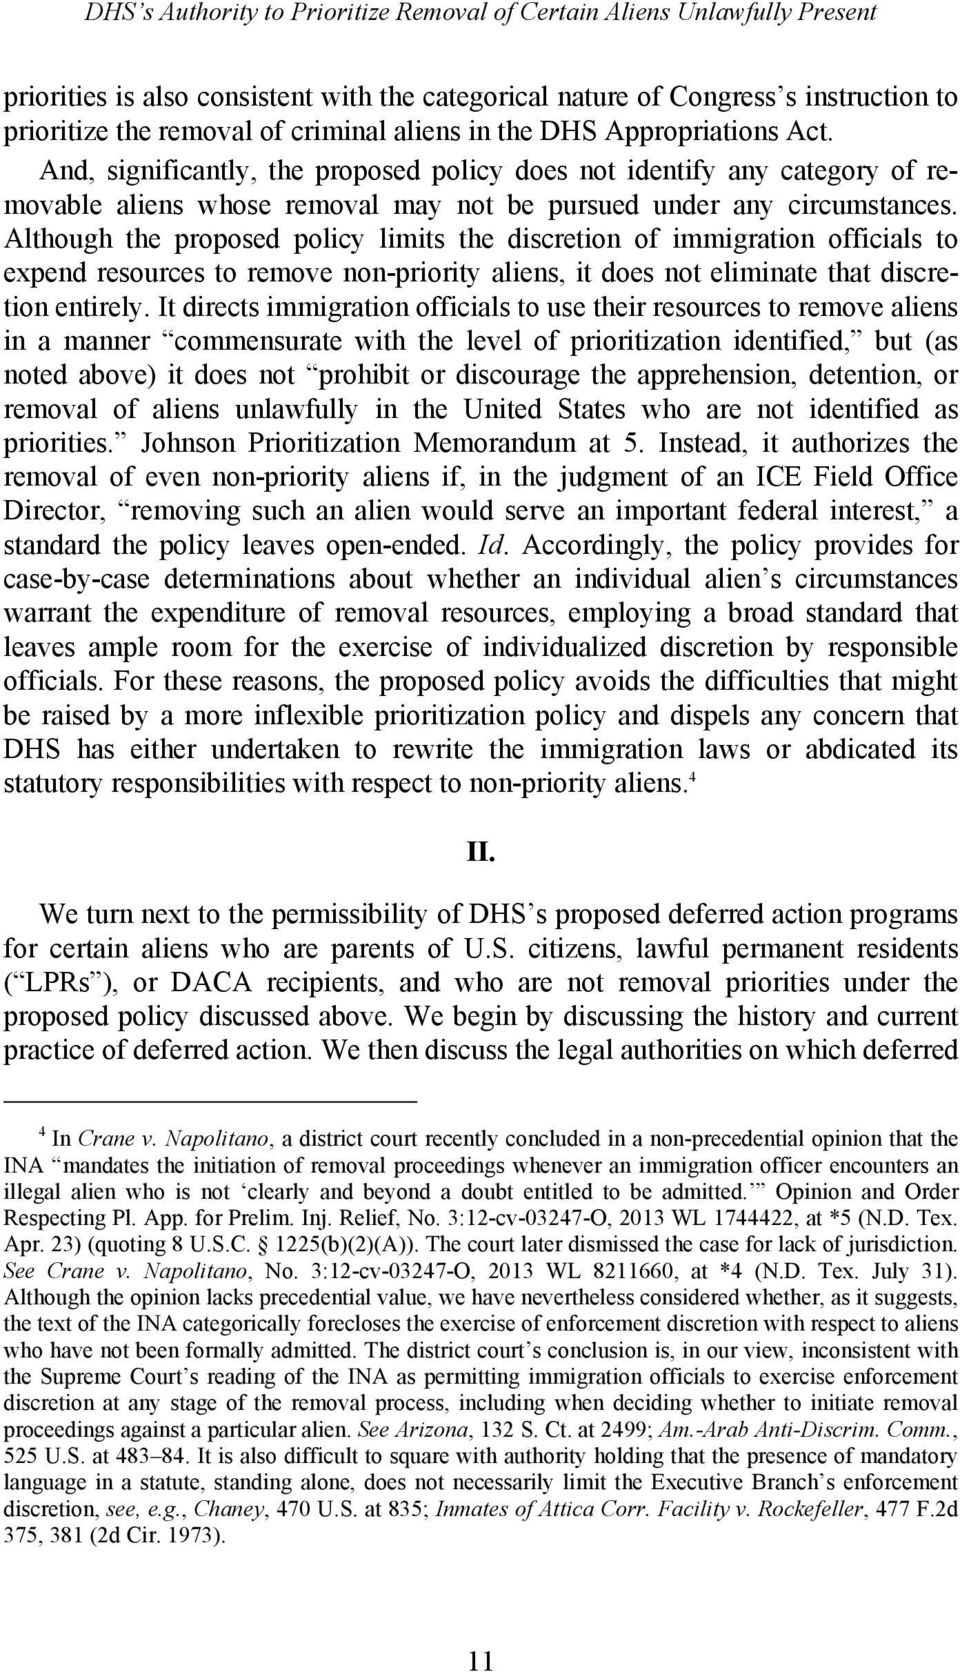 Although the proposed policy limits the discretion of immigration officials to expend resources to remove non-priority aliens, it does not eliminate that discretion entirely.